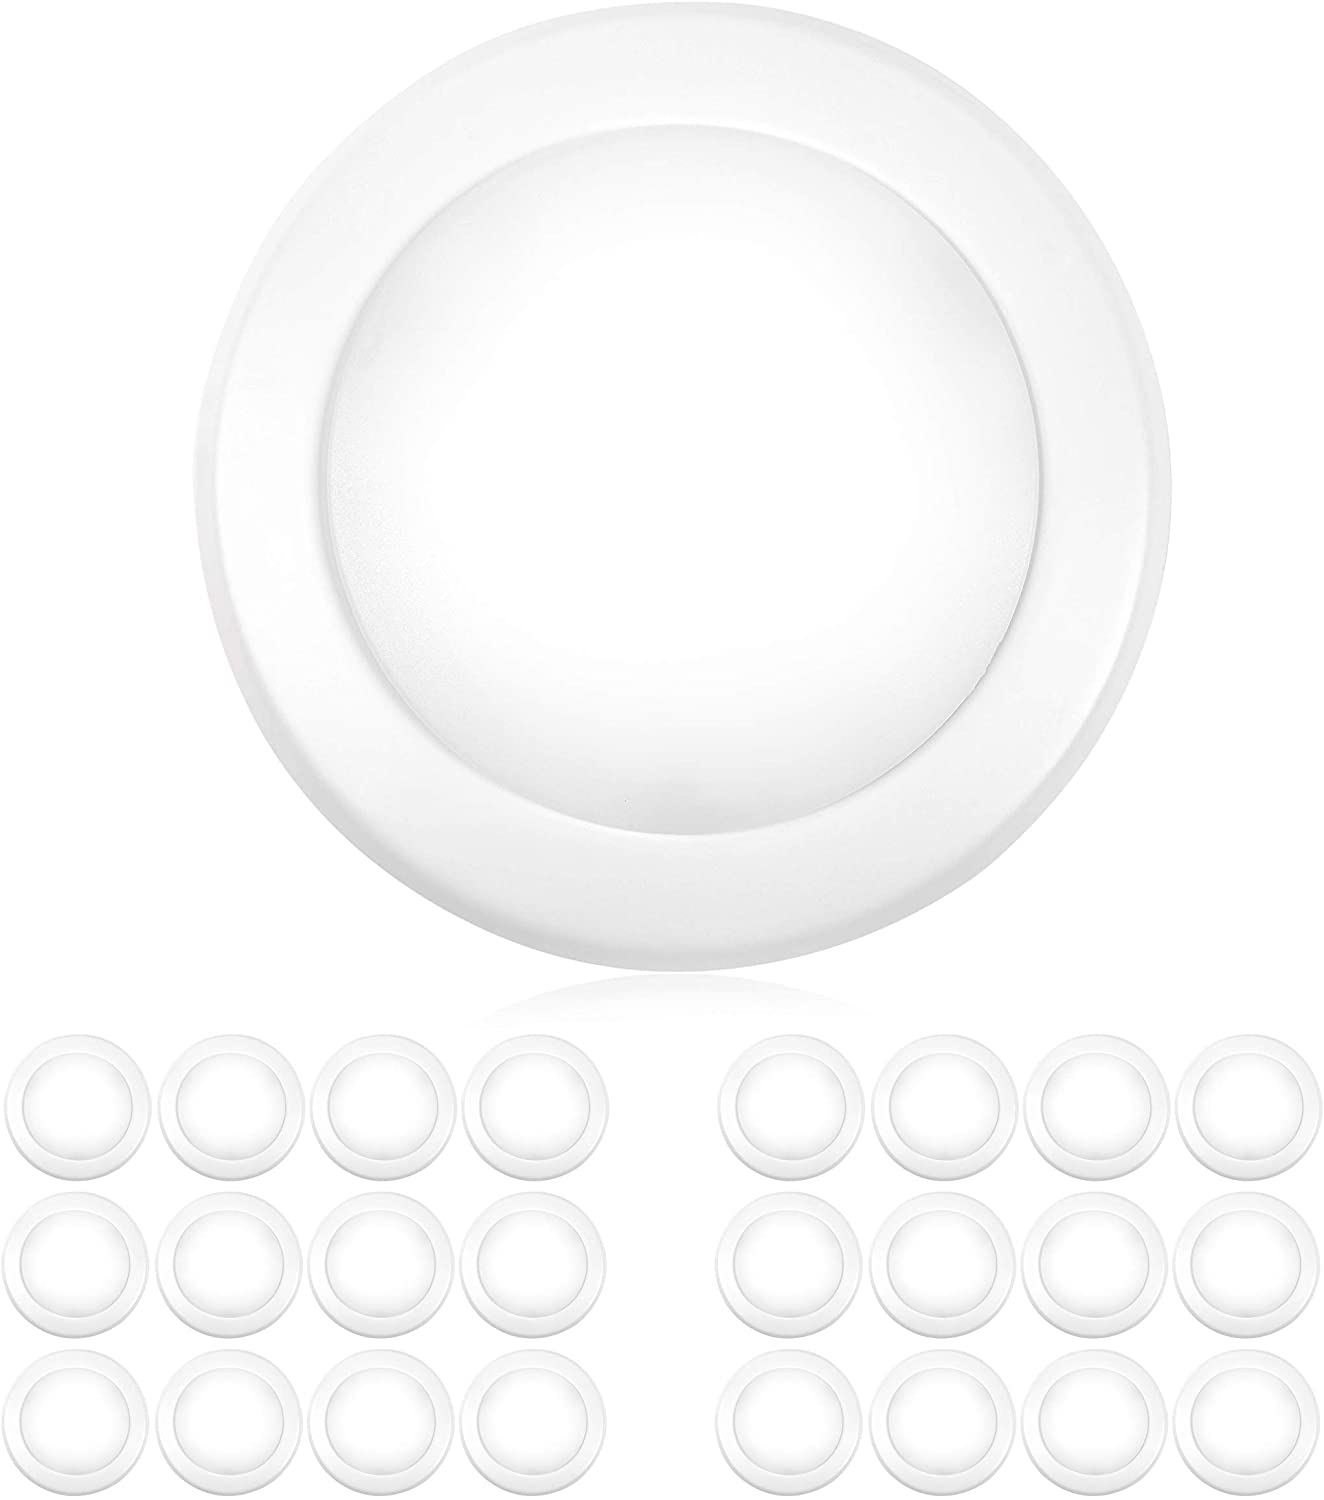 """PARMIDA (24 Pack) 5/6"""" Dimmable LED Disk Light Flush Mount Recessed Retrofit Ceiling Lights, 15W (120W Replacement), 2700K, Energy Star & UL-Listed, Installs into Junction Box Or Recessed Can, 1050lm"""